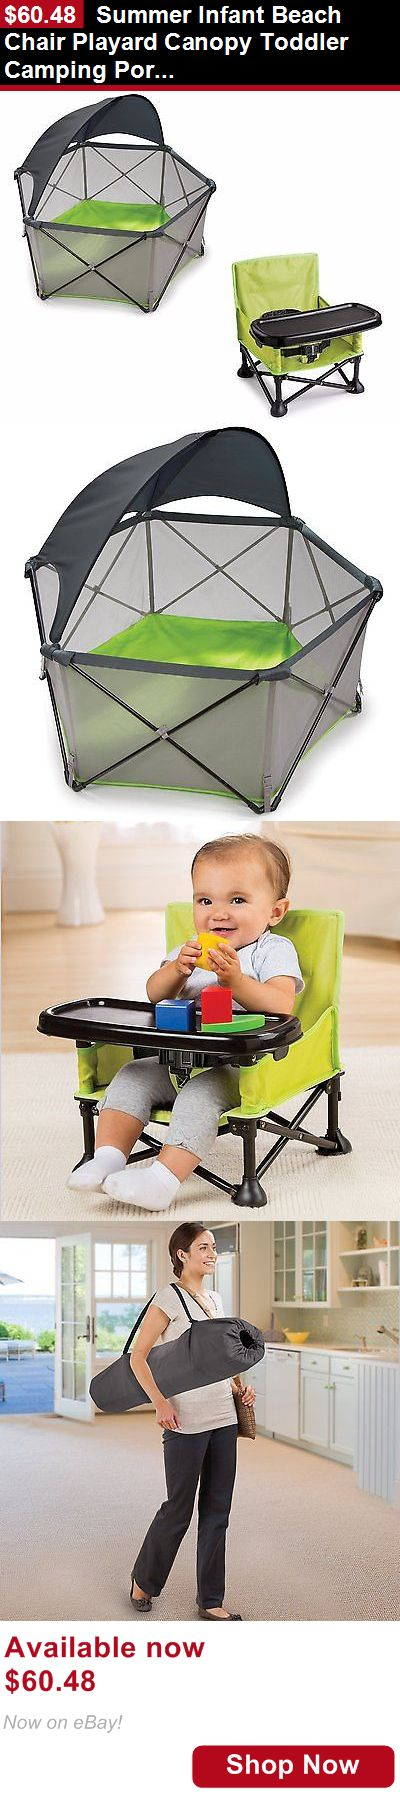 Booster Chairs: Summer Infant Beach Chair Playard Canopy Toddler Camping Portable Booster Bundle BUY IT NOW ONLY: $60.48